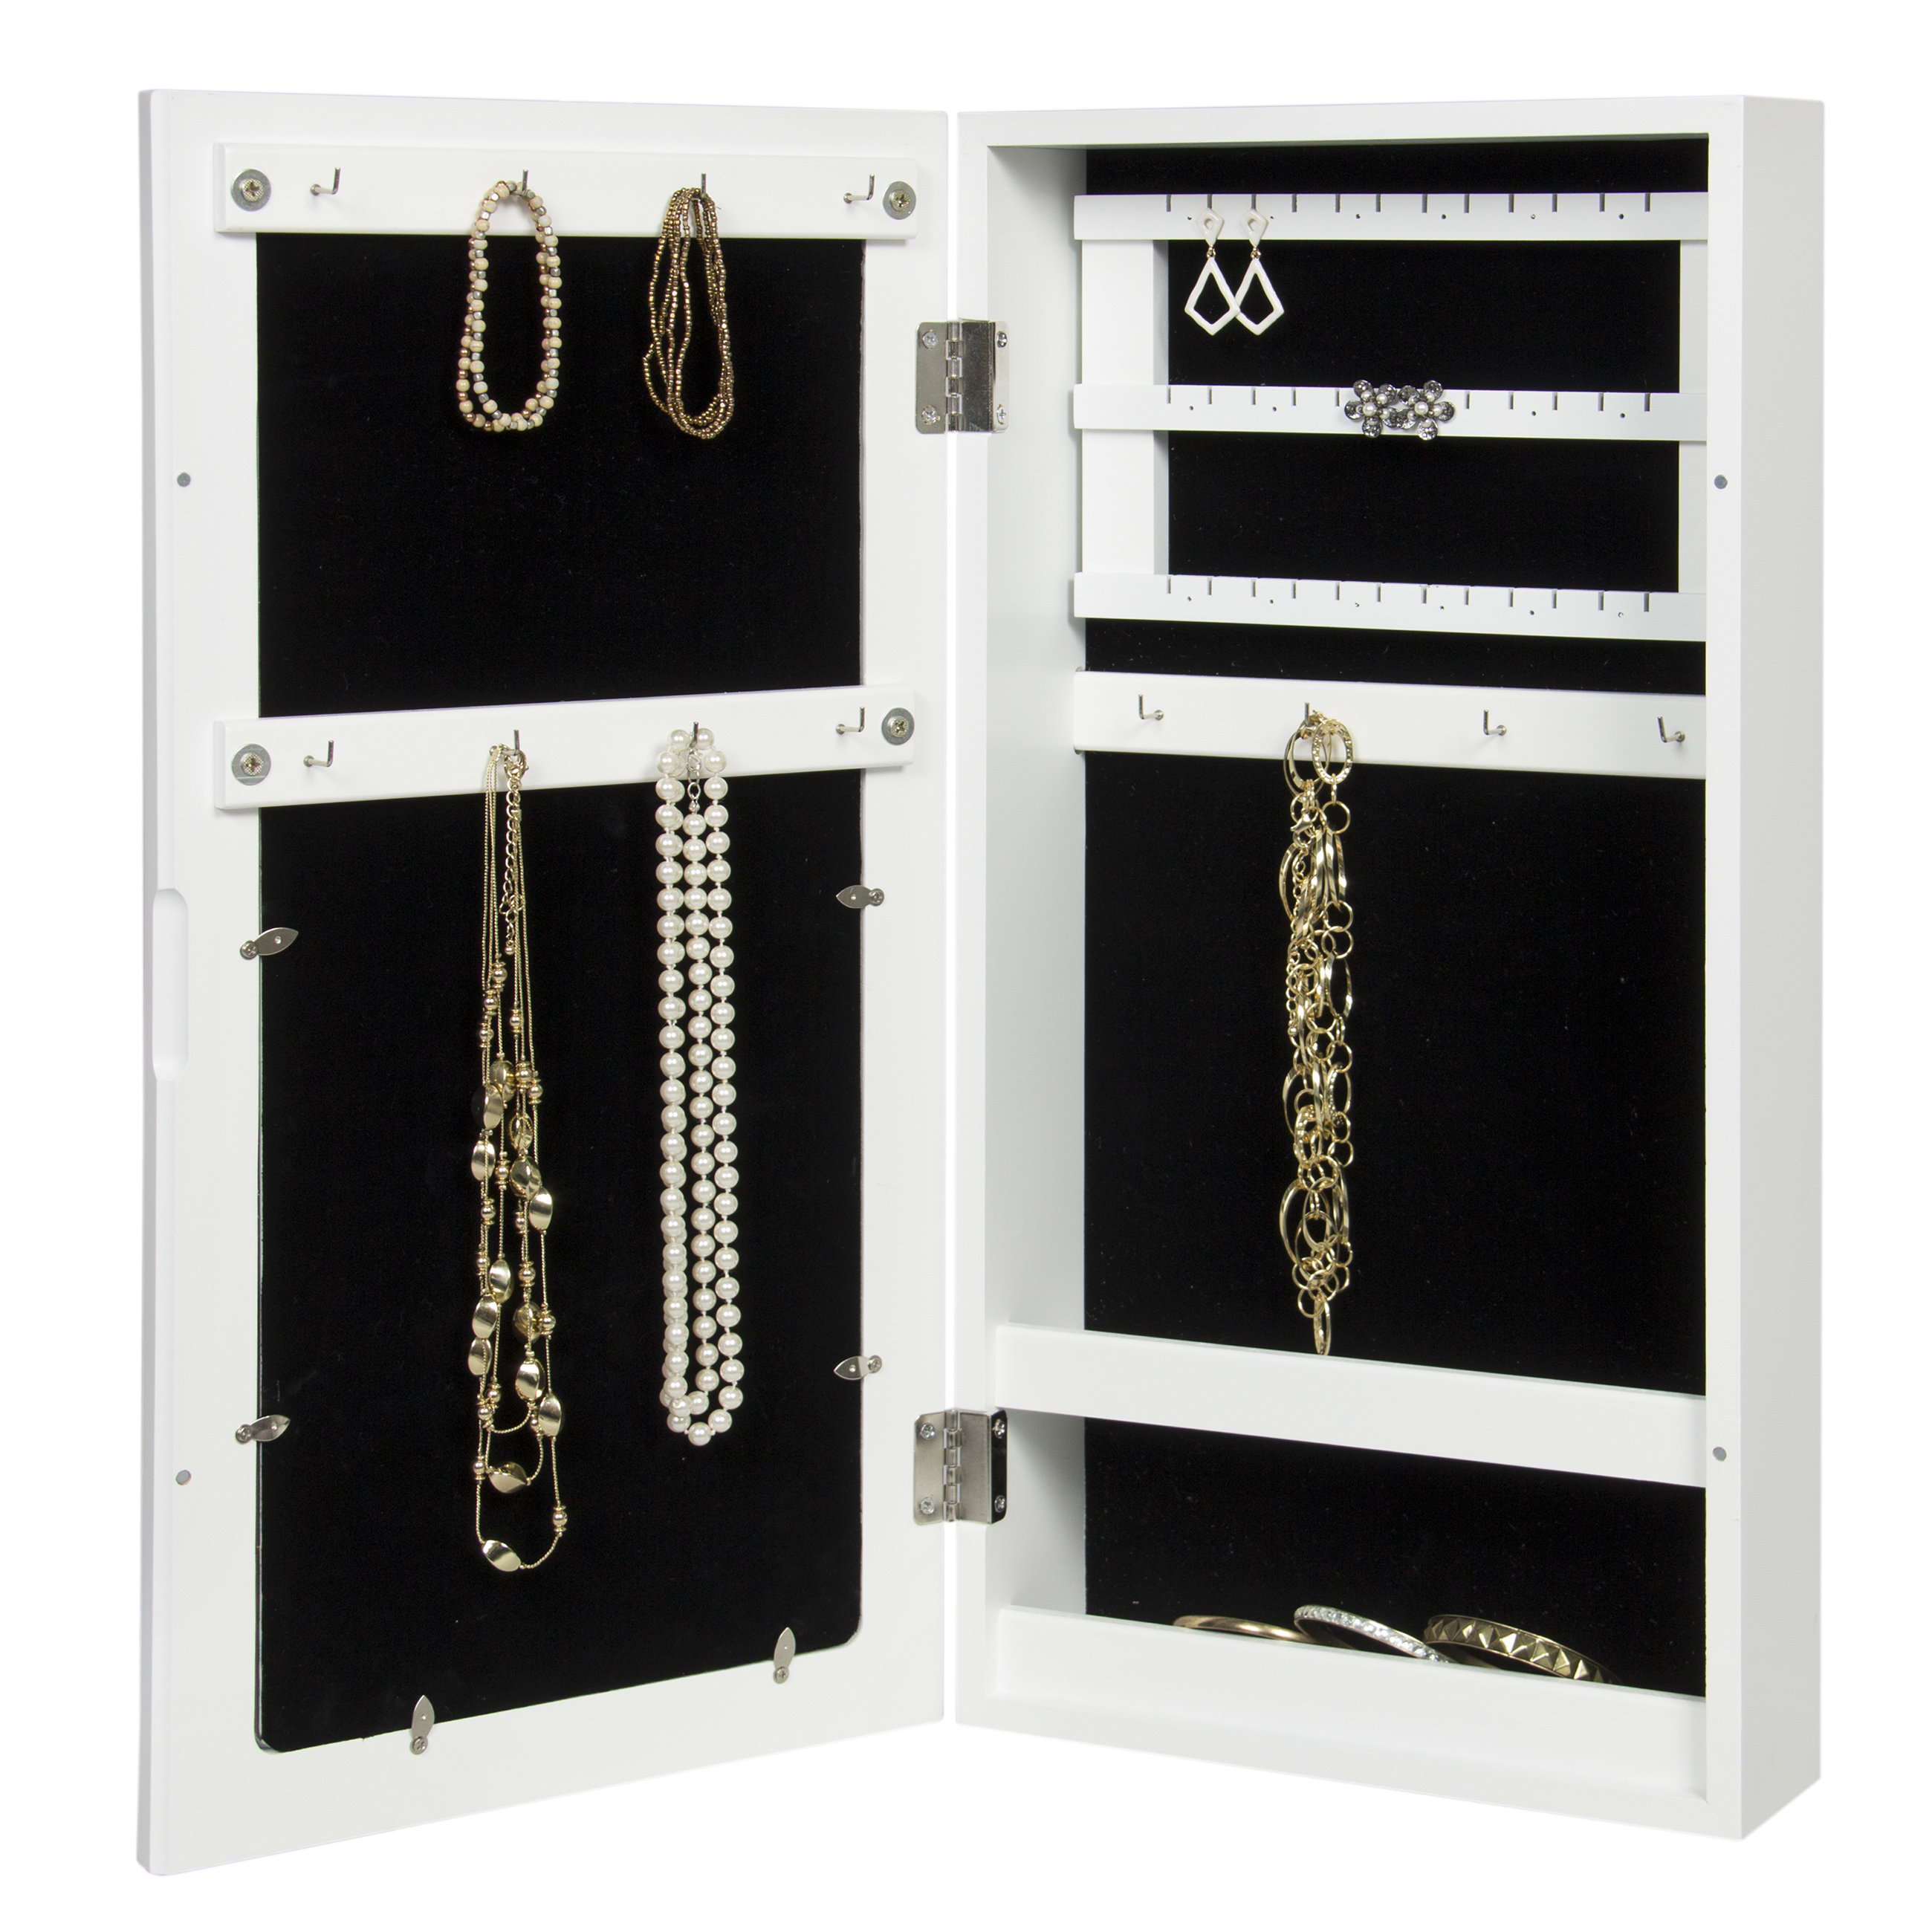 Wall mounted jewelry armoire cabinet organizer w 4 for Picture frame organization wall